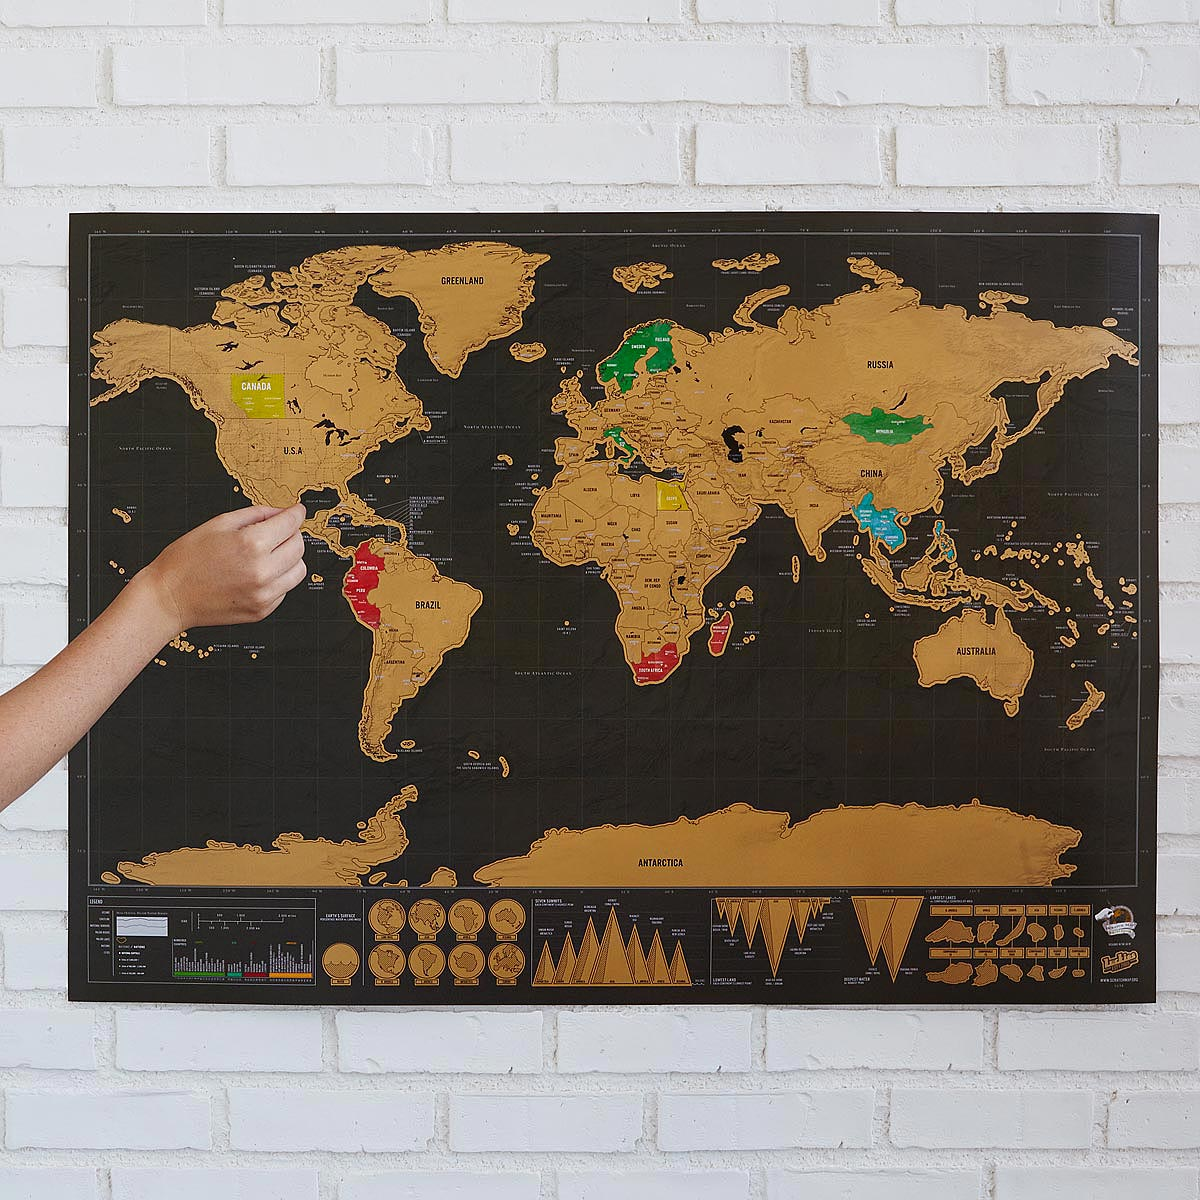 Scratch Map Chapters Very Goods | Scratch Map Deluxe | Scratch Off Wall Maps  Scratch Map Chapters